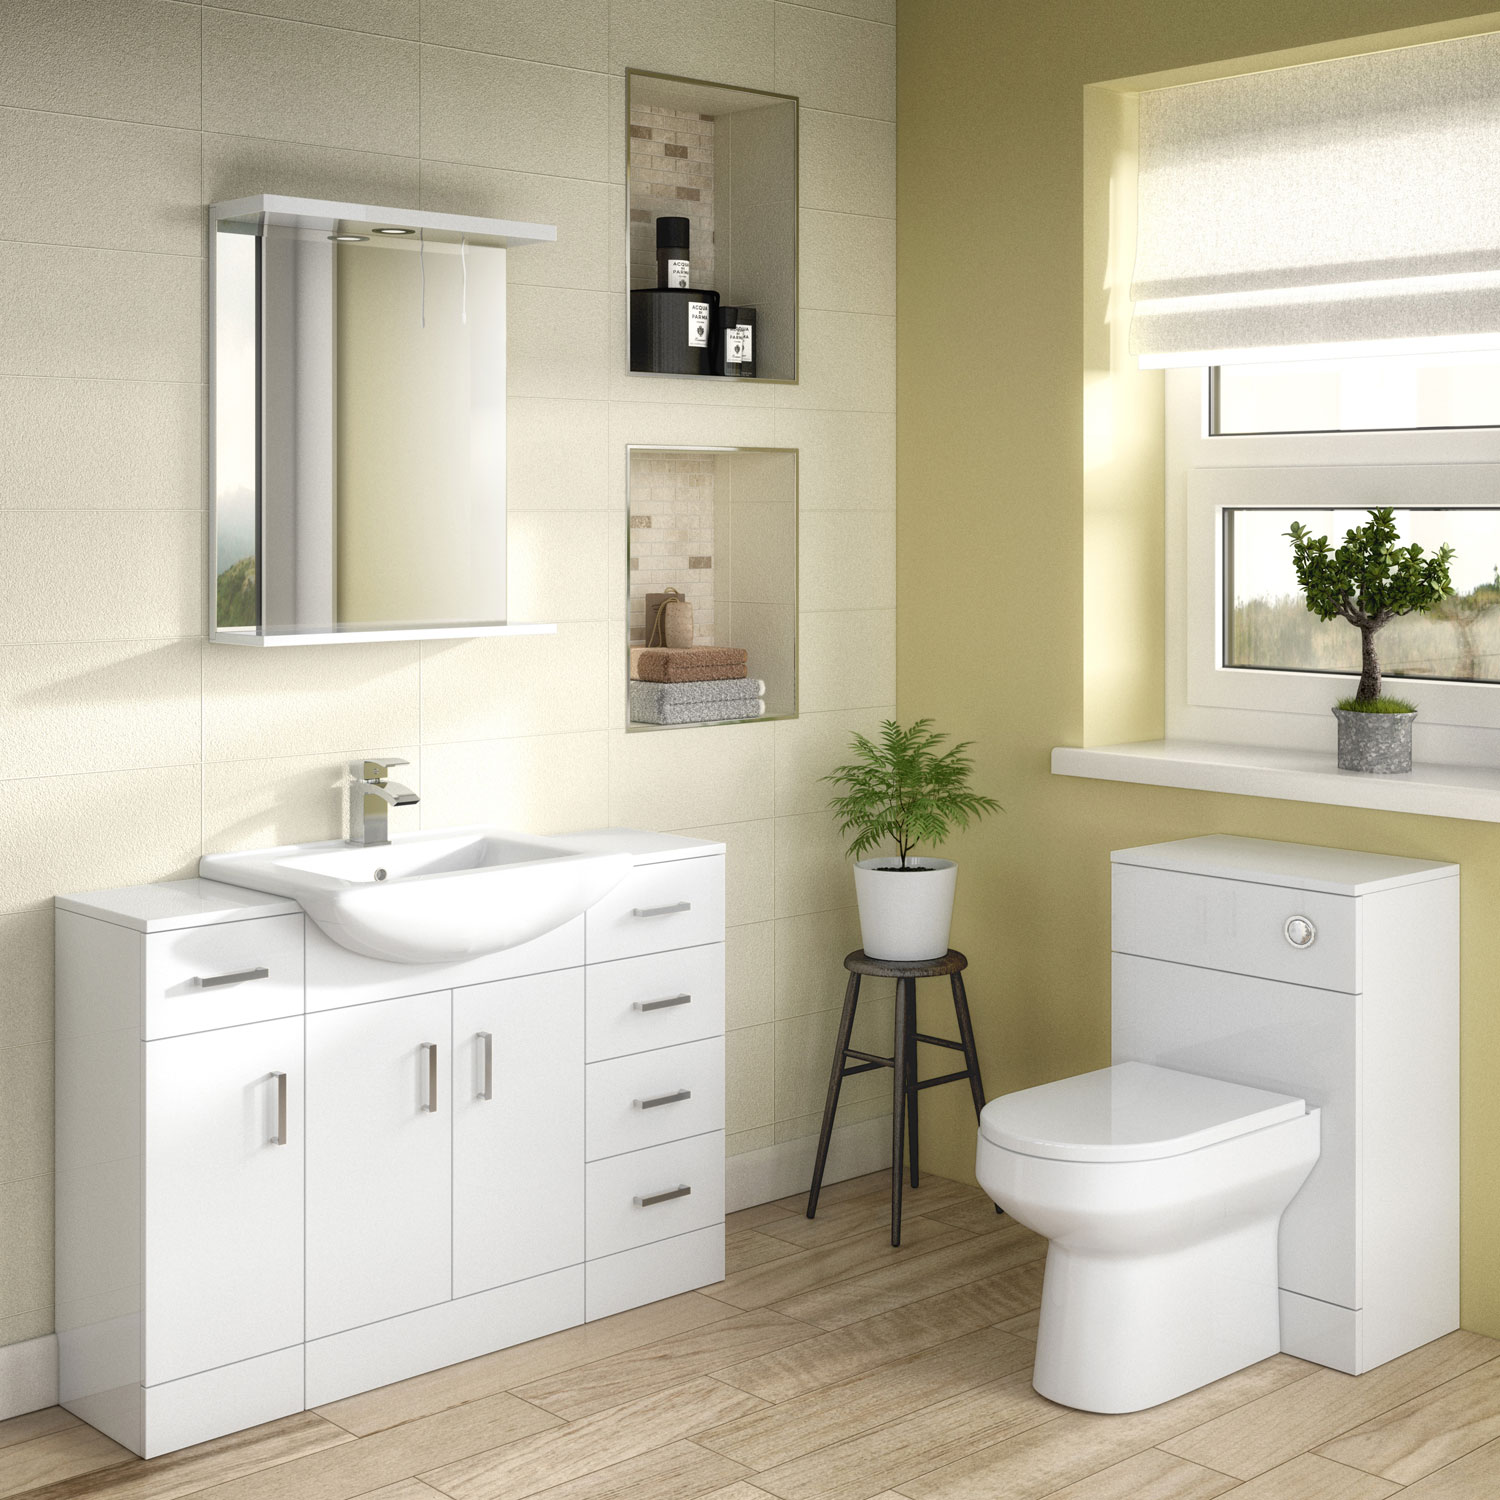 Premier Mayford Complementary Bathroom Mirror 550mm W White